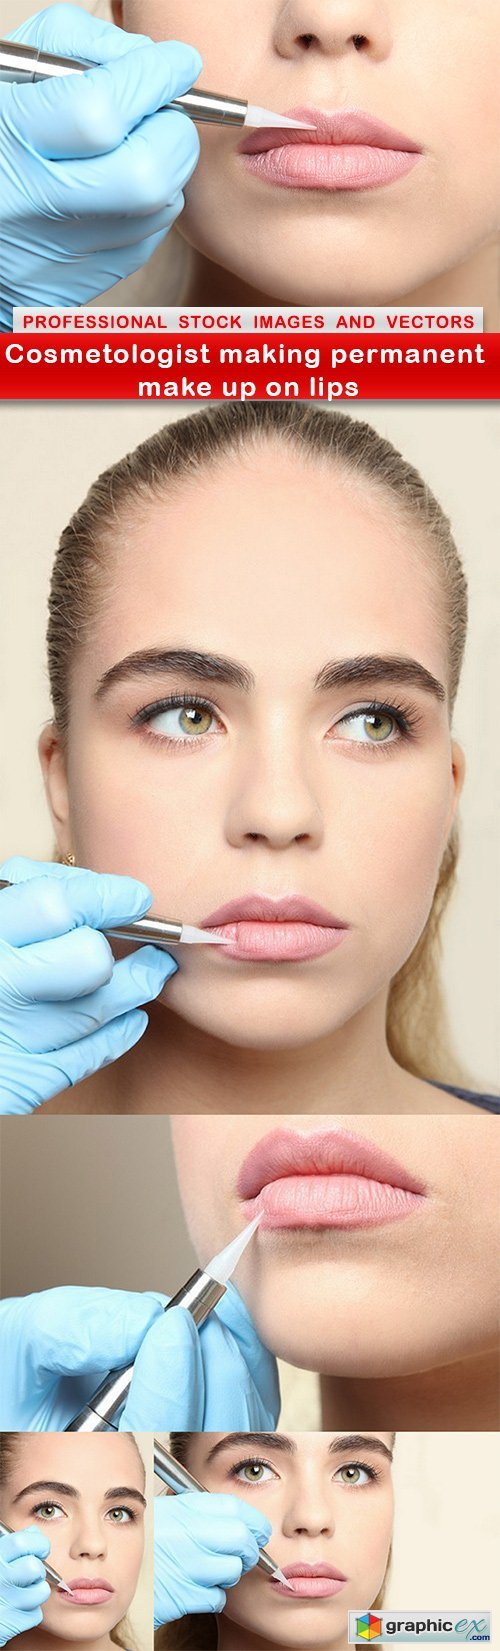 Cosmetologist making permanent make up on lips - 5 UHQ JPEG